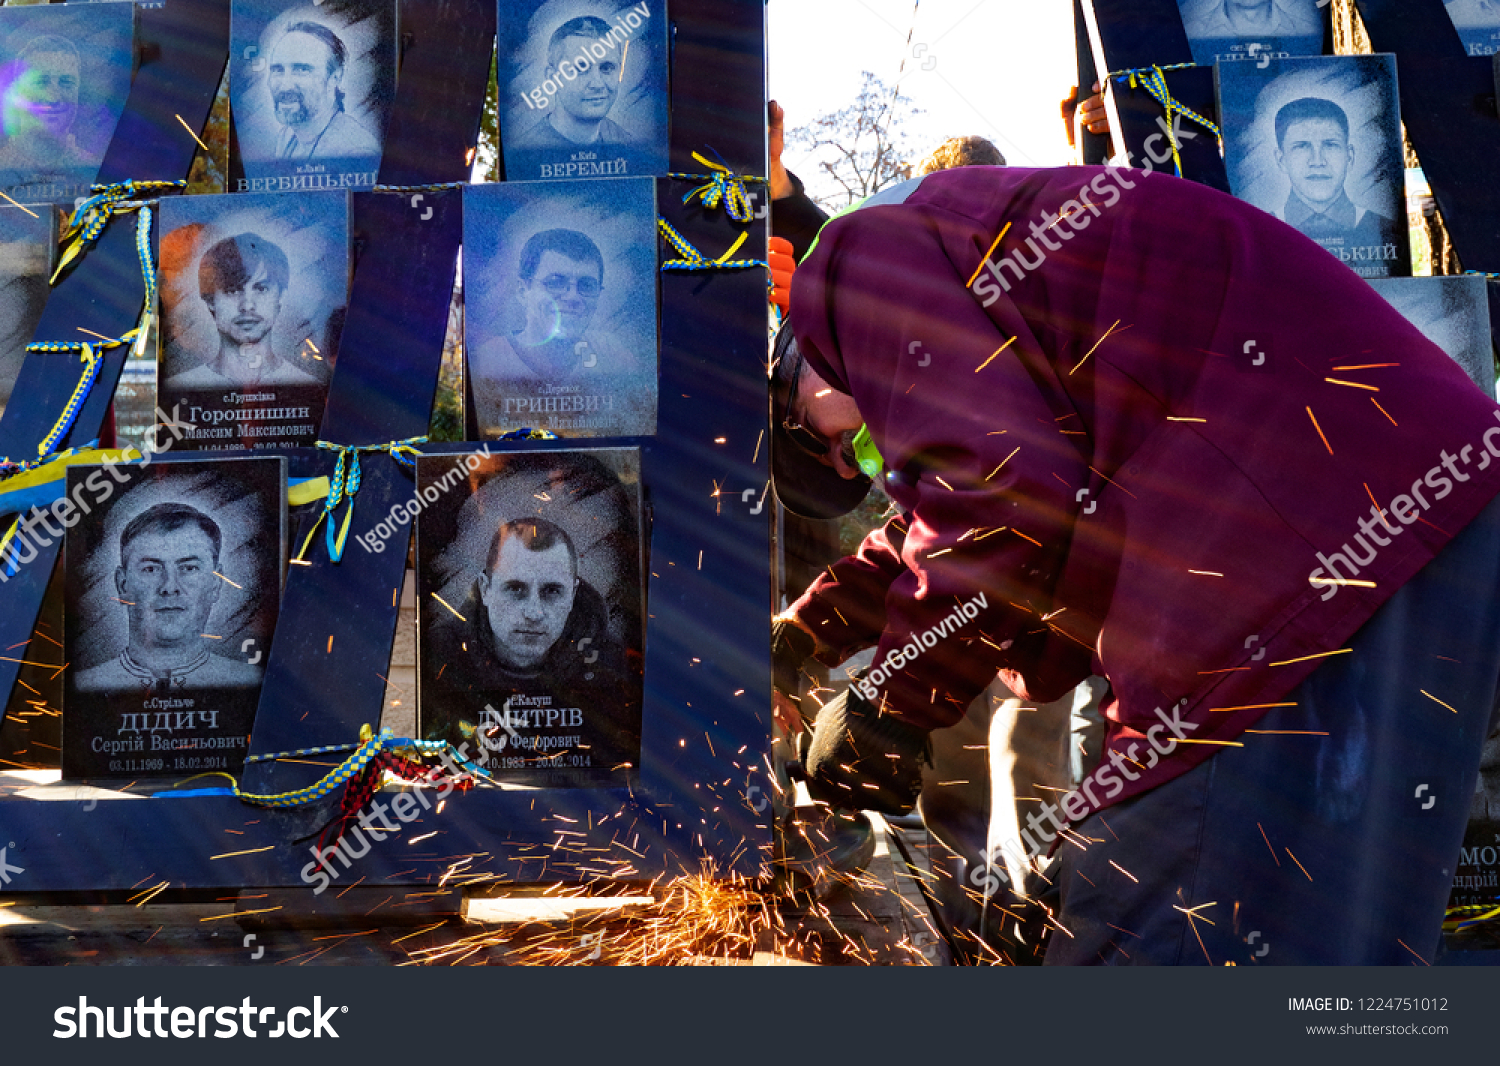 KIEV, UKRAINE - November 7, 2018:  Municipal workers are dismantling the 'Heroes of the Heavenly Hundred'  memorial, dedicated to Euromaidan activists who was killed during anti-government clashes